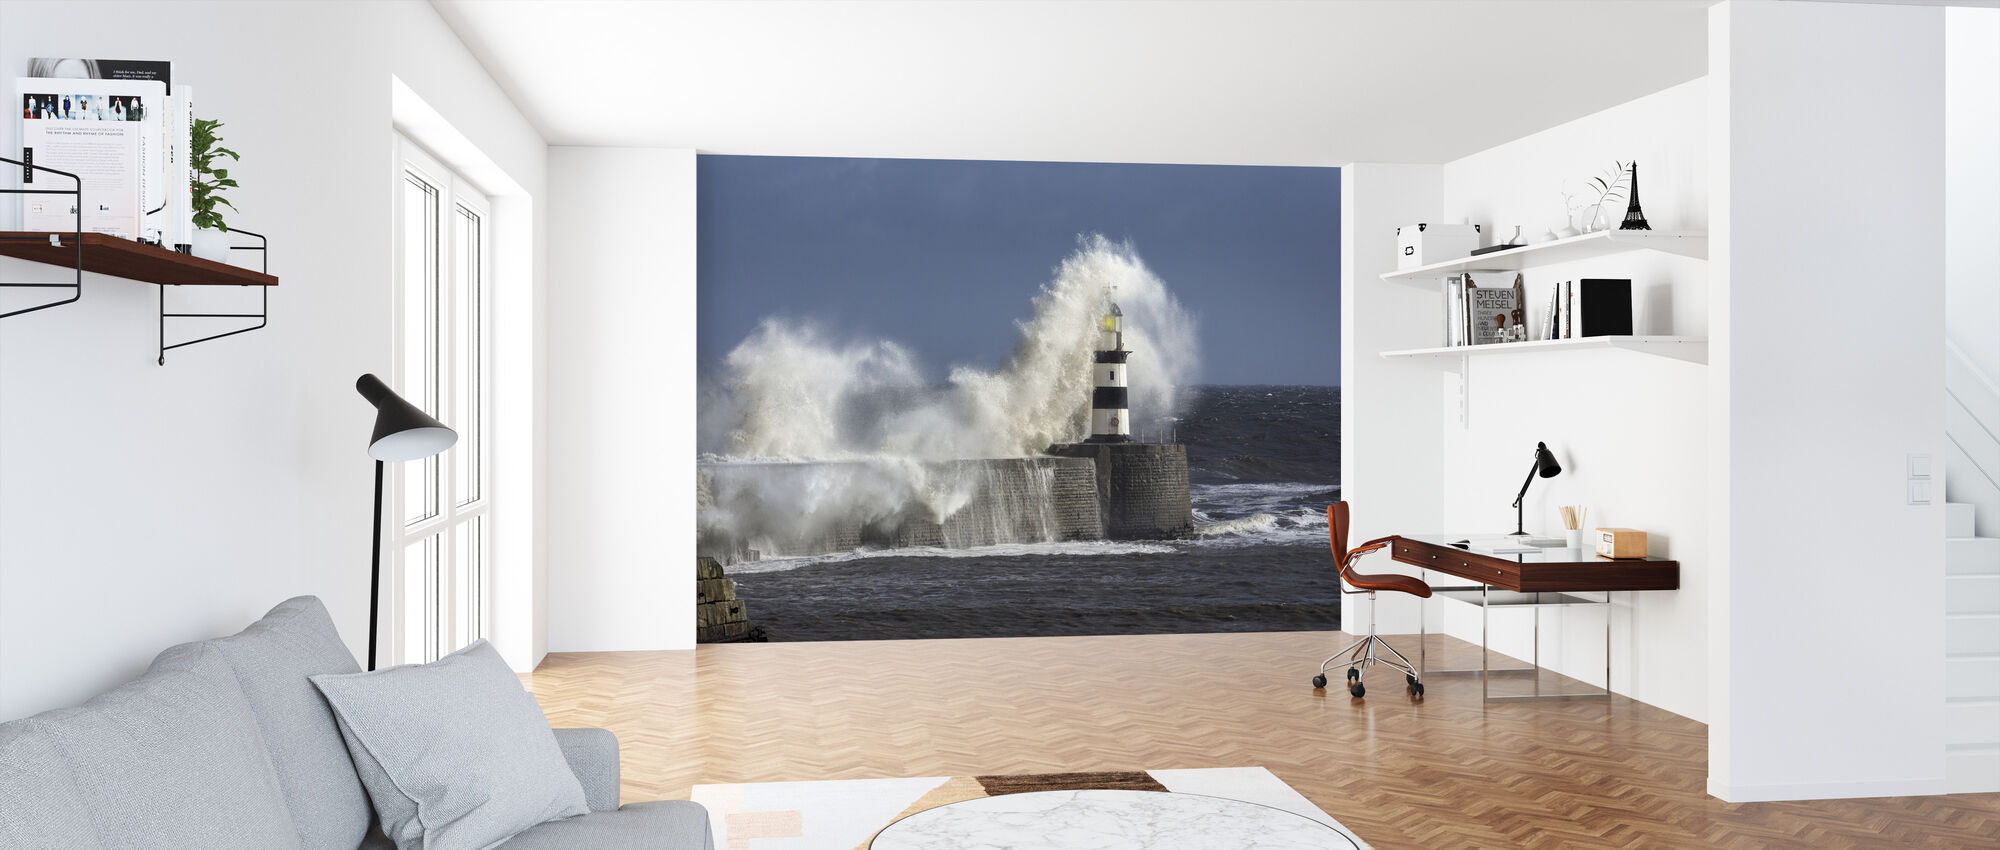 Rough Sea at Seaham Lighthouse in England - Wallpaper - Office